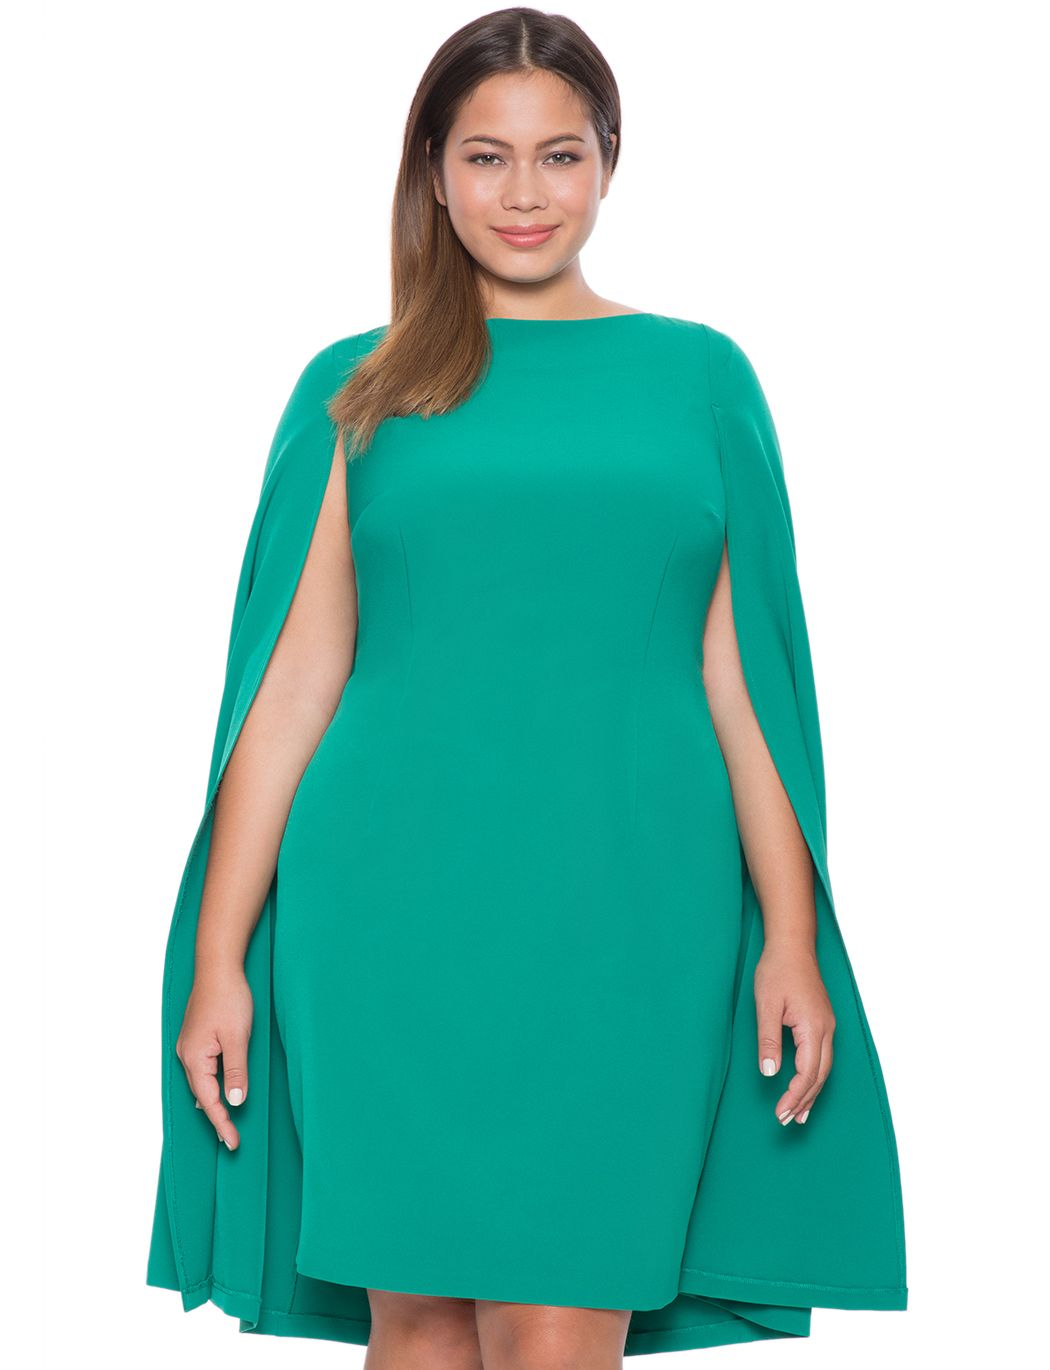 Studio Cape Dress | Women\'s Plus Size Dresses in 2019 ...